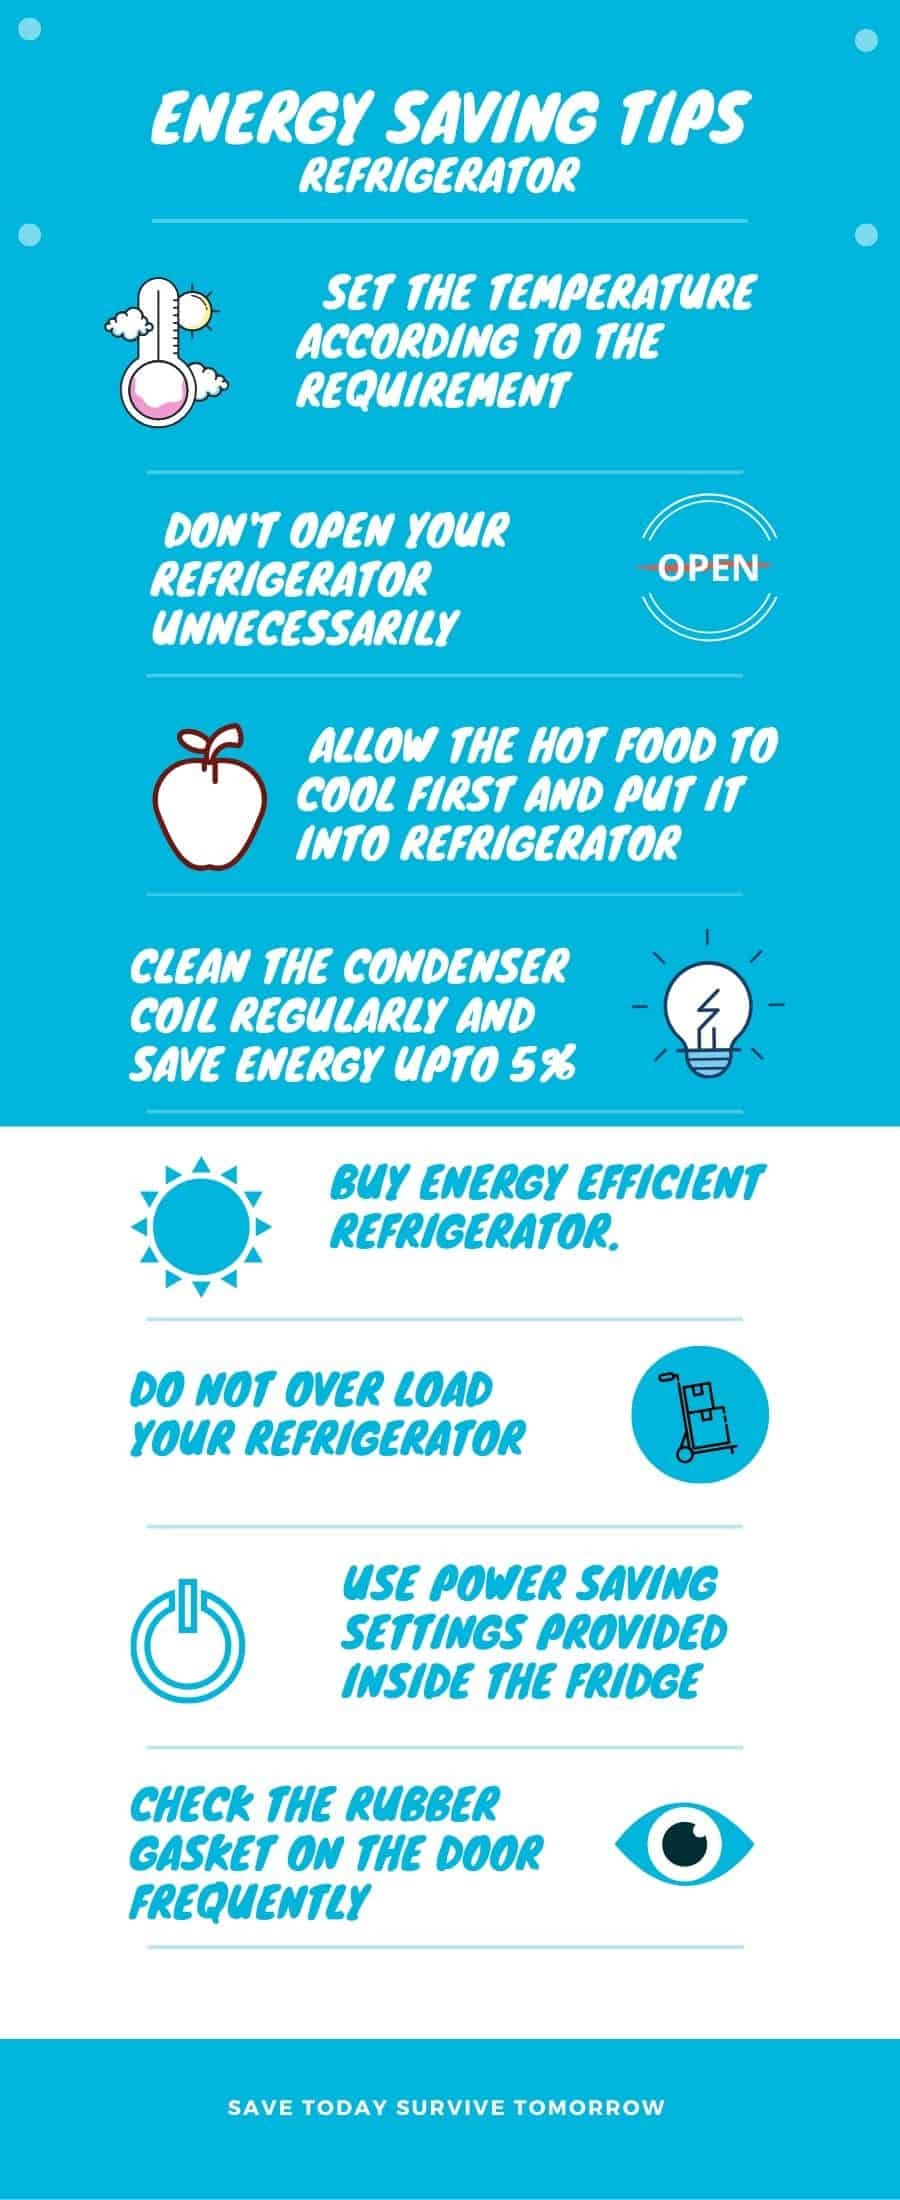 Energy Saving Tips Refrigerator Infographic